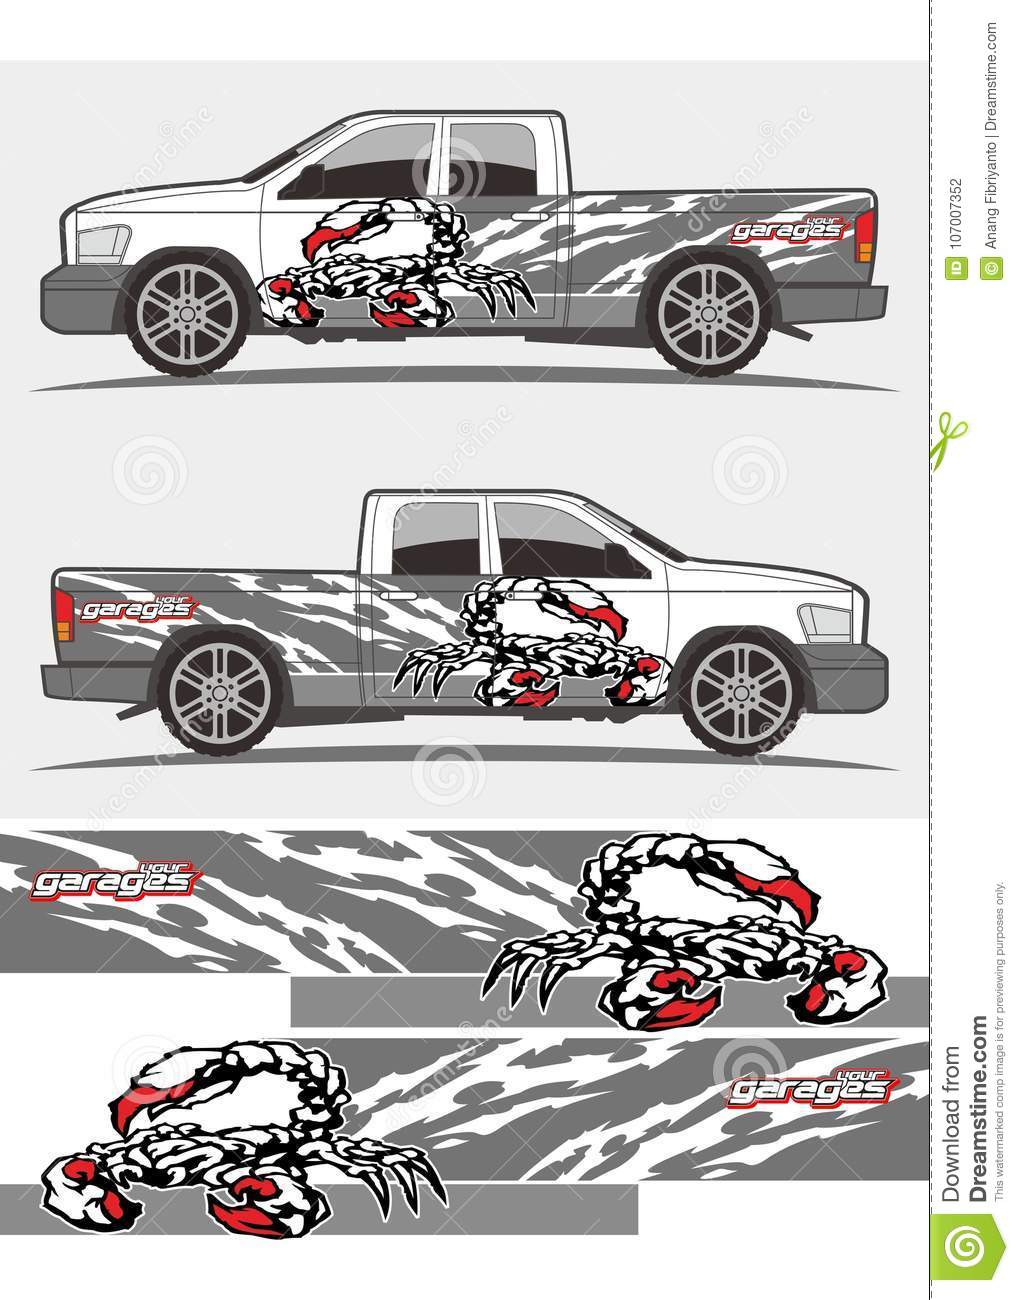 Attacked scorpion decal graphics kits design for trucks and van